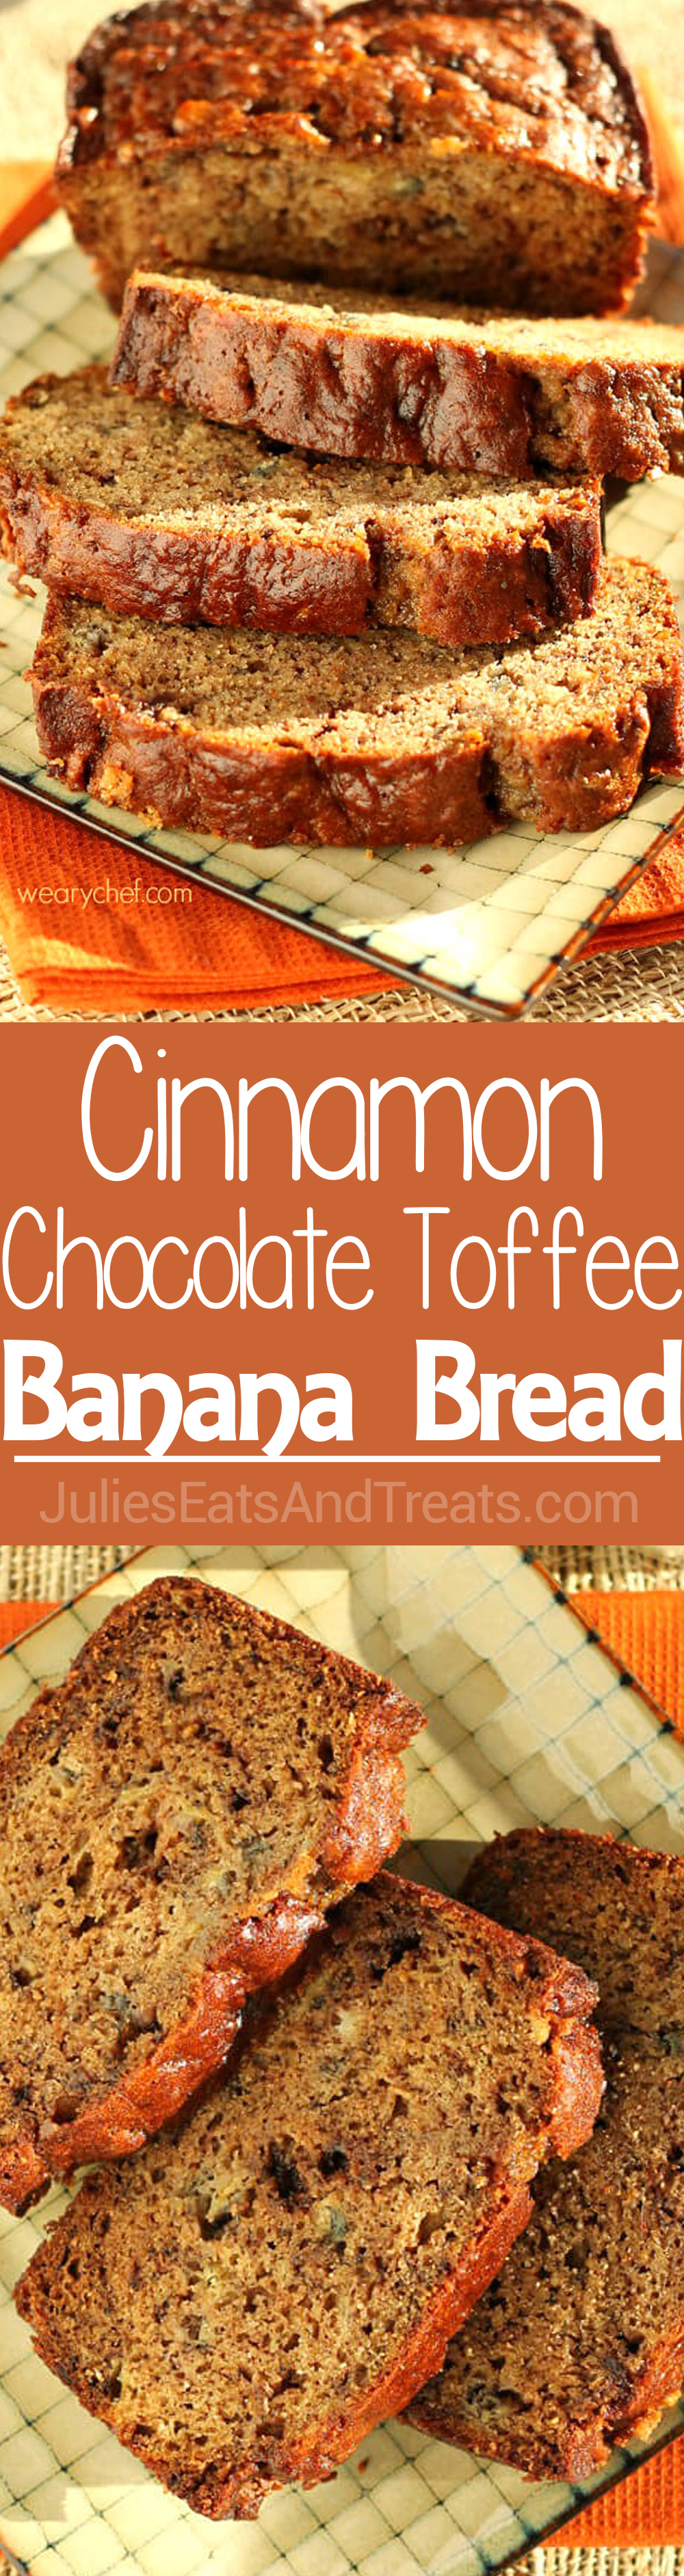 Cinnamon chocolate toffee banana bread recipe chocolate toffee food network star cinnamon chocolate toffee banana bread this chocolate toffee banana bread is perfect for breakfast forumfinder Gallery